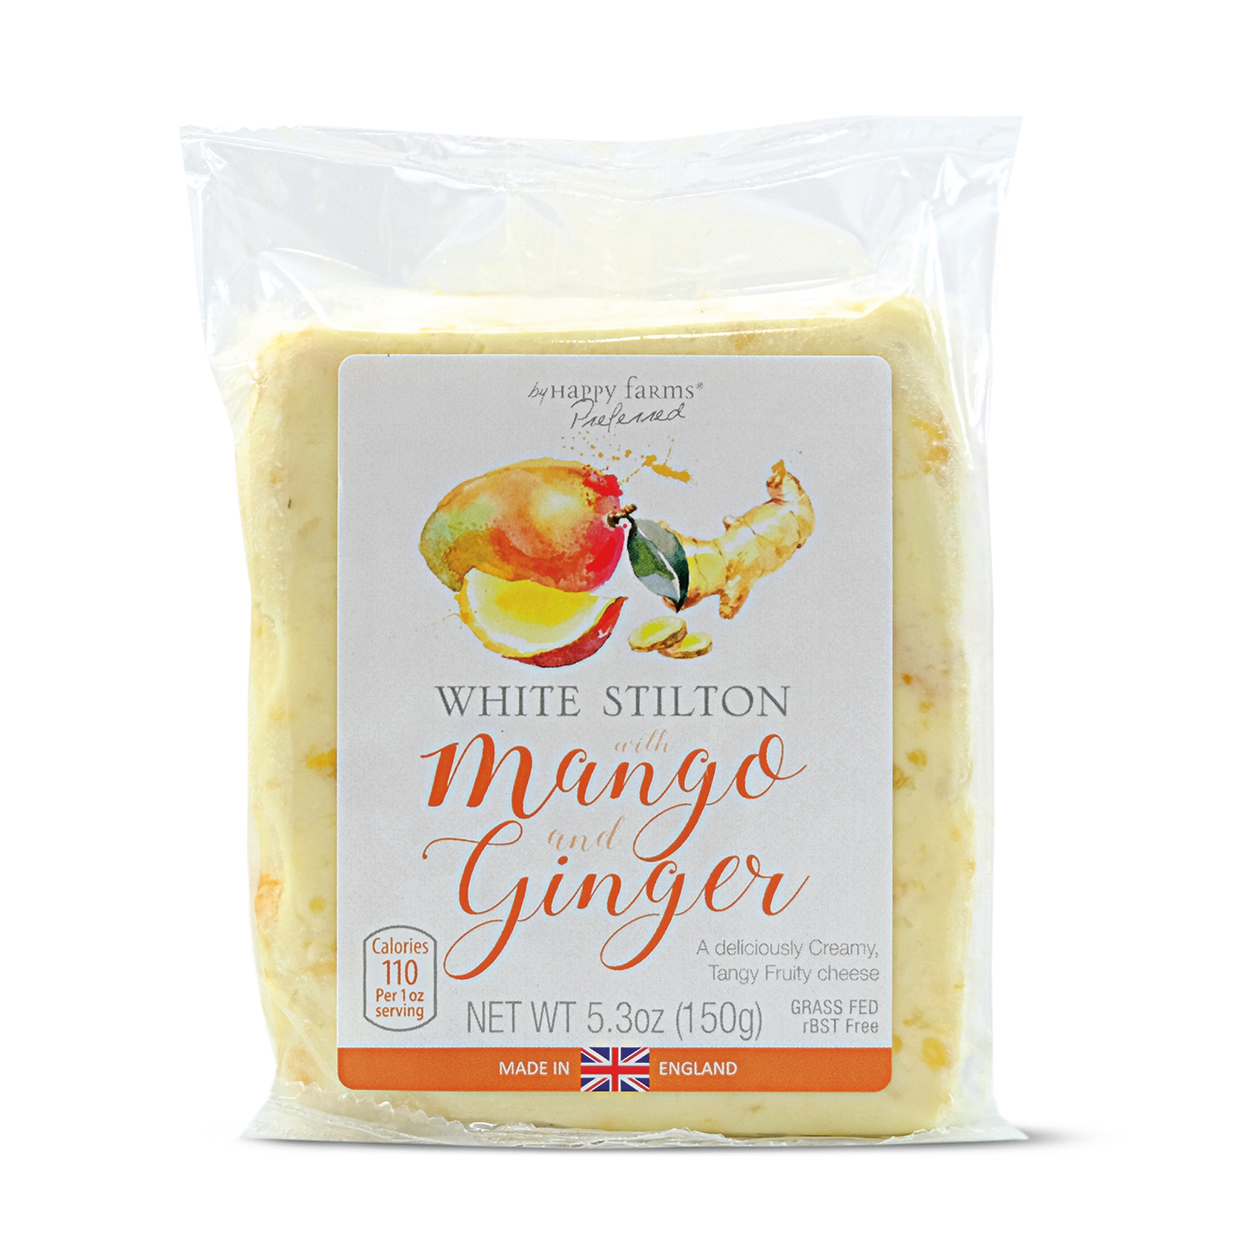 Aldi white stilton cheese with mango and ginger in packaging on white background